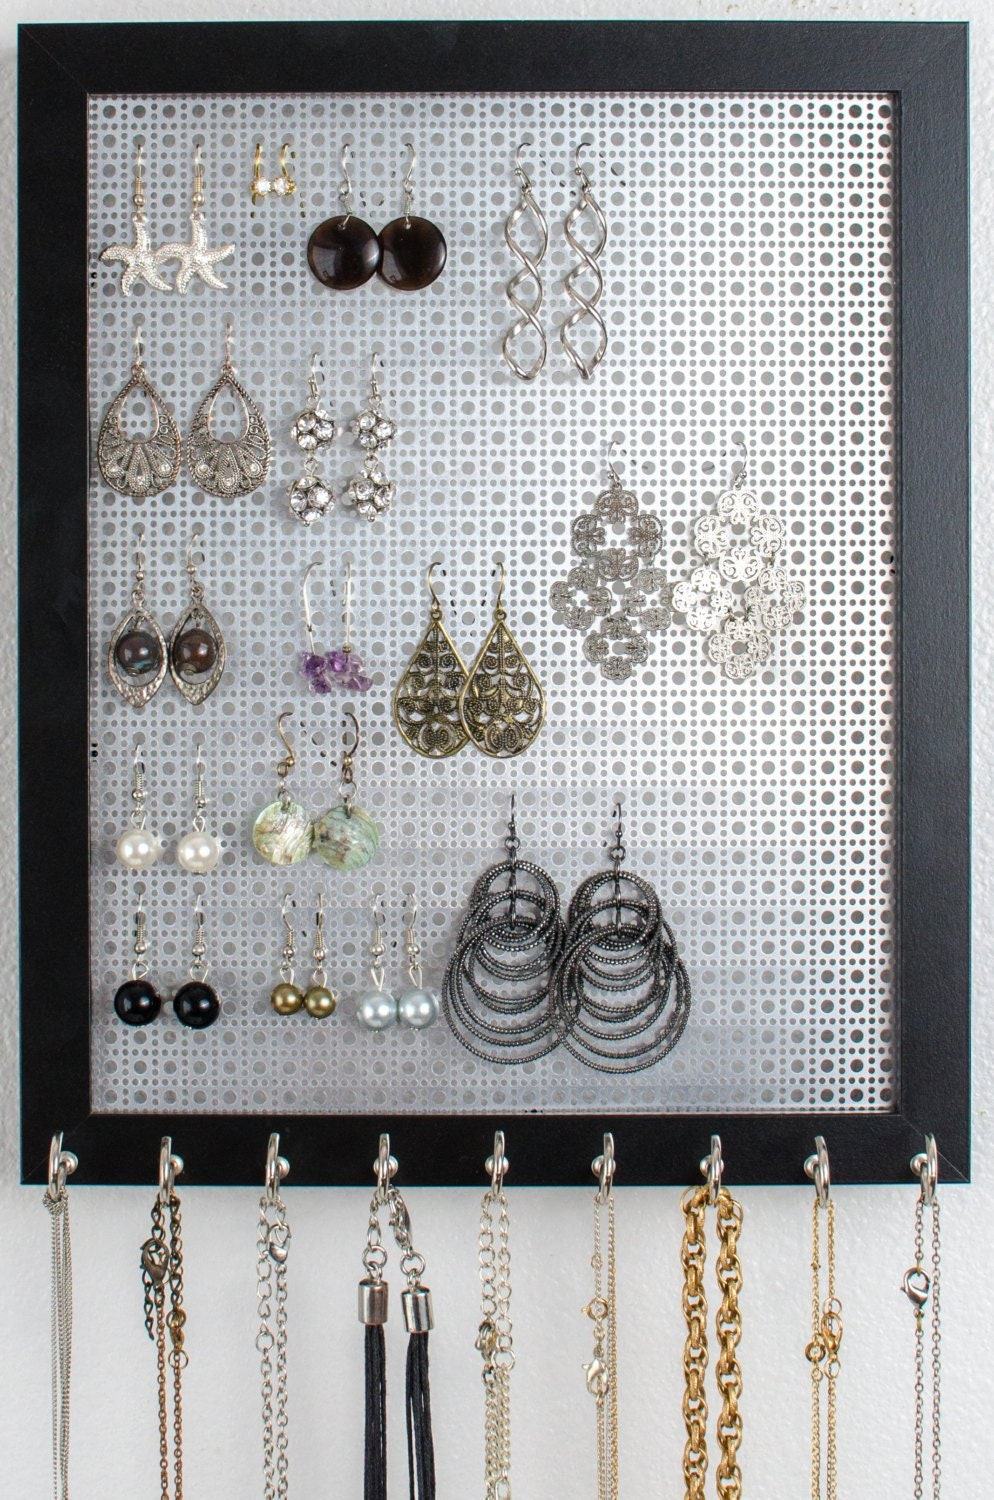 Hanging Jewelry Organizer - Silver Metal Screen - 8x10 Size - Black ...